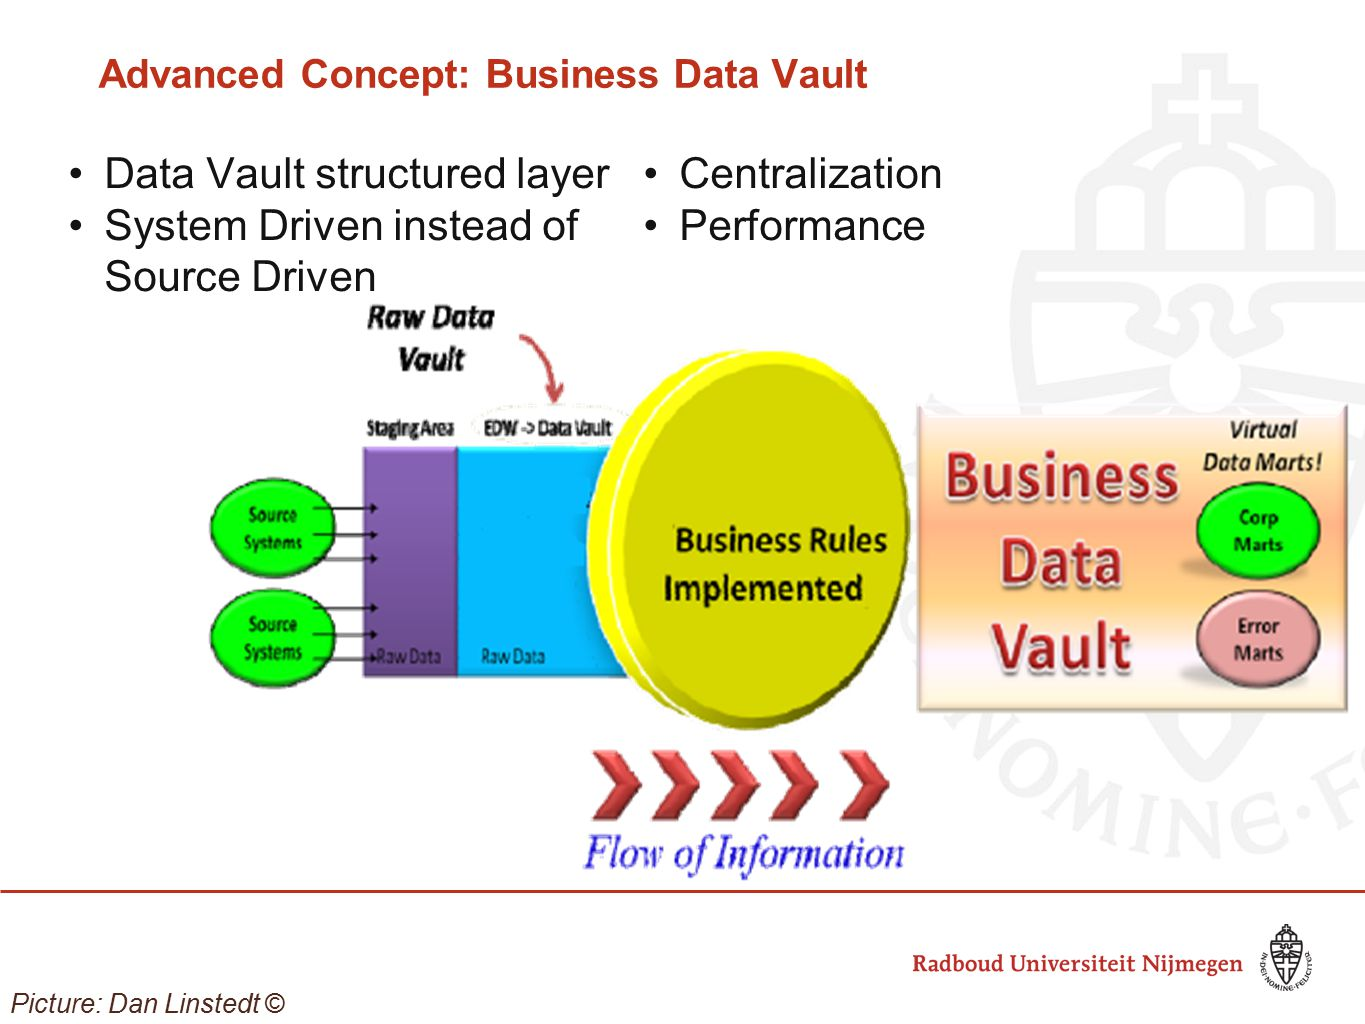 Advanced Concept: Business Data Vault